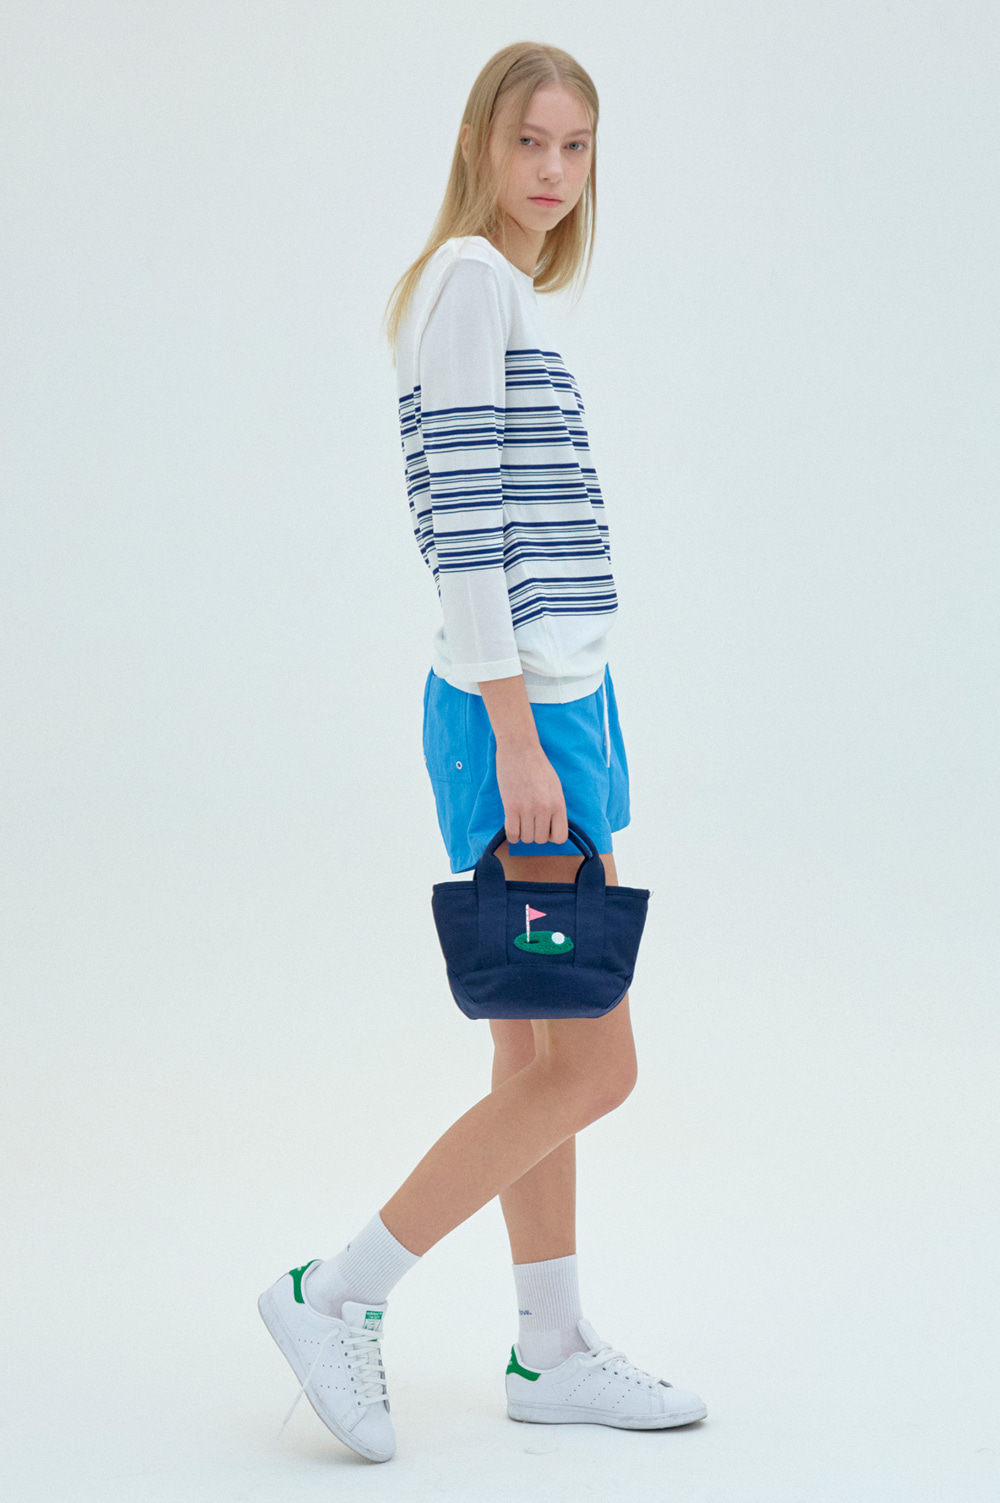 clove - Canvas Tote Bag (Navy)